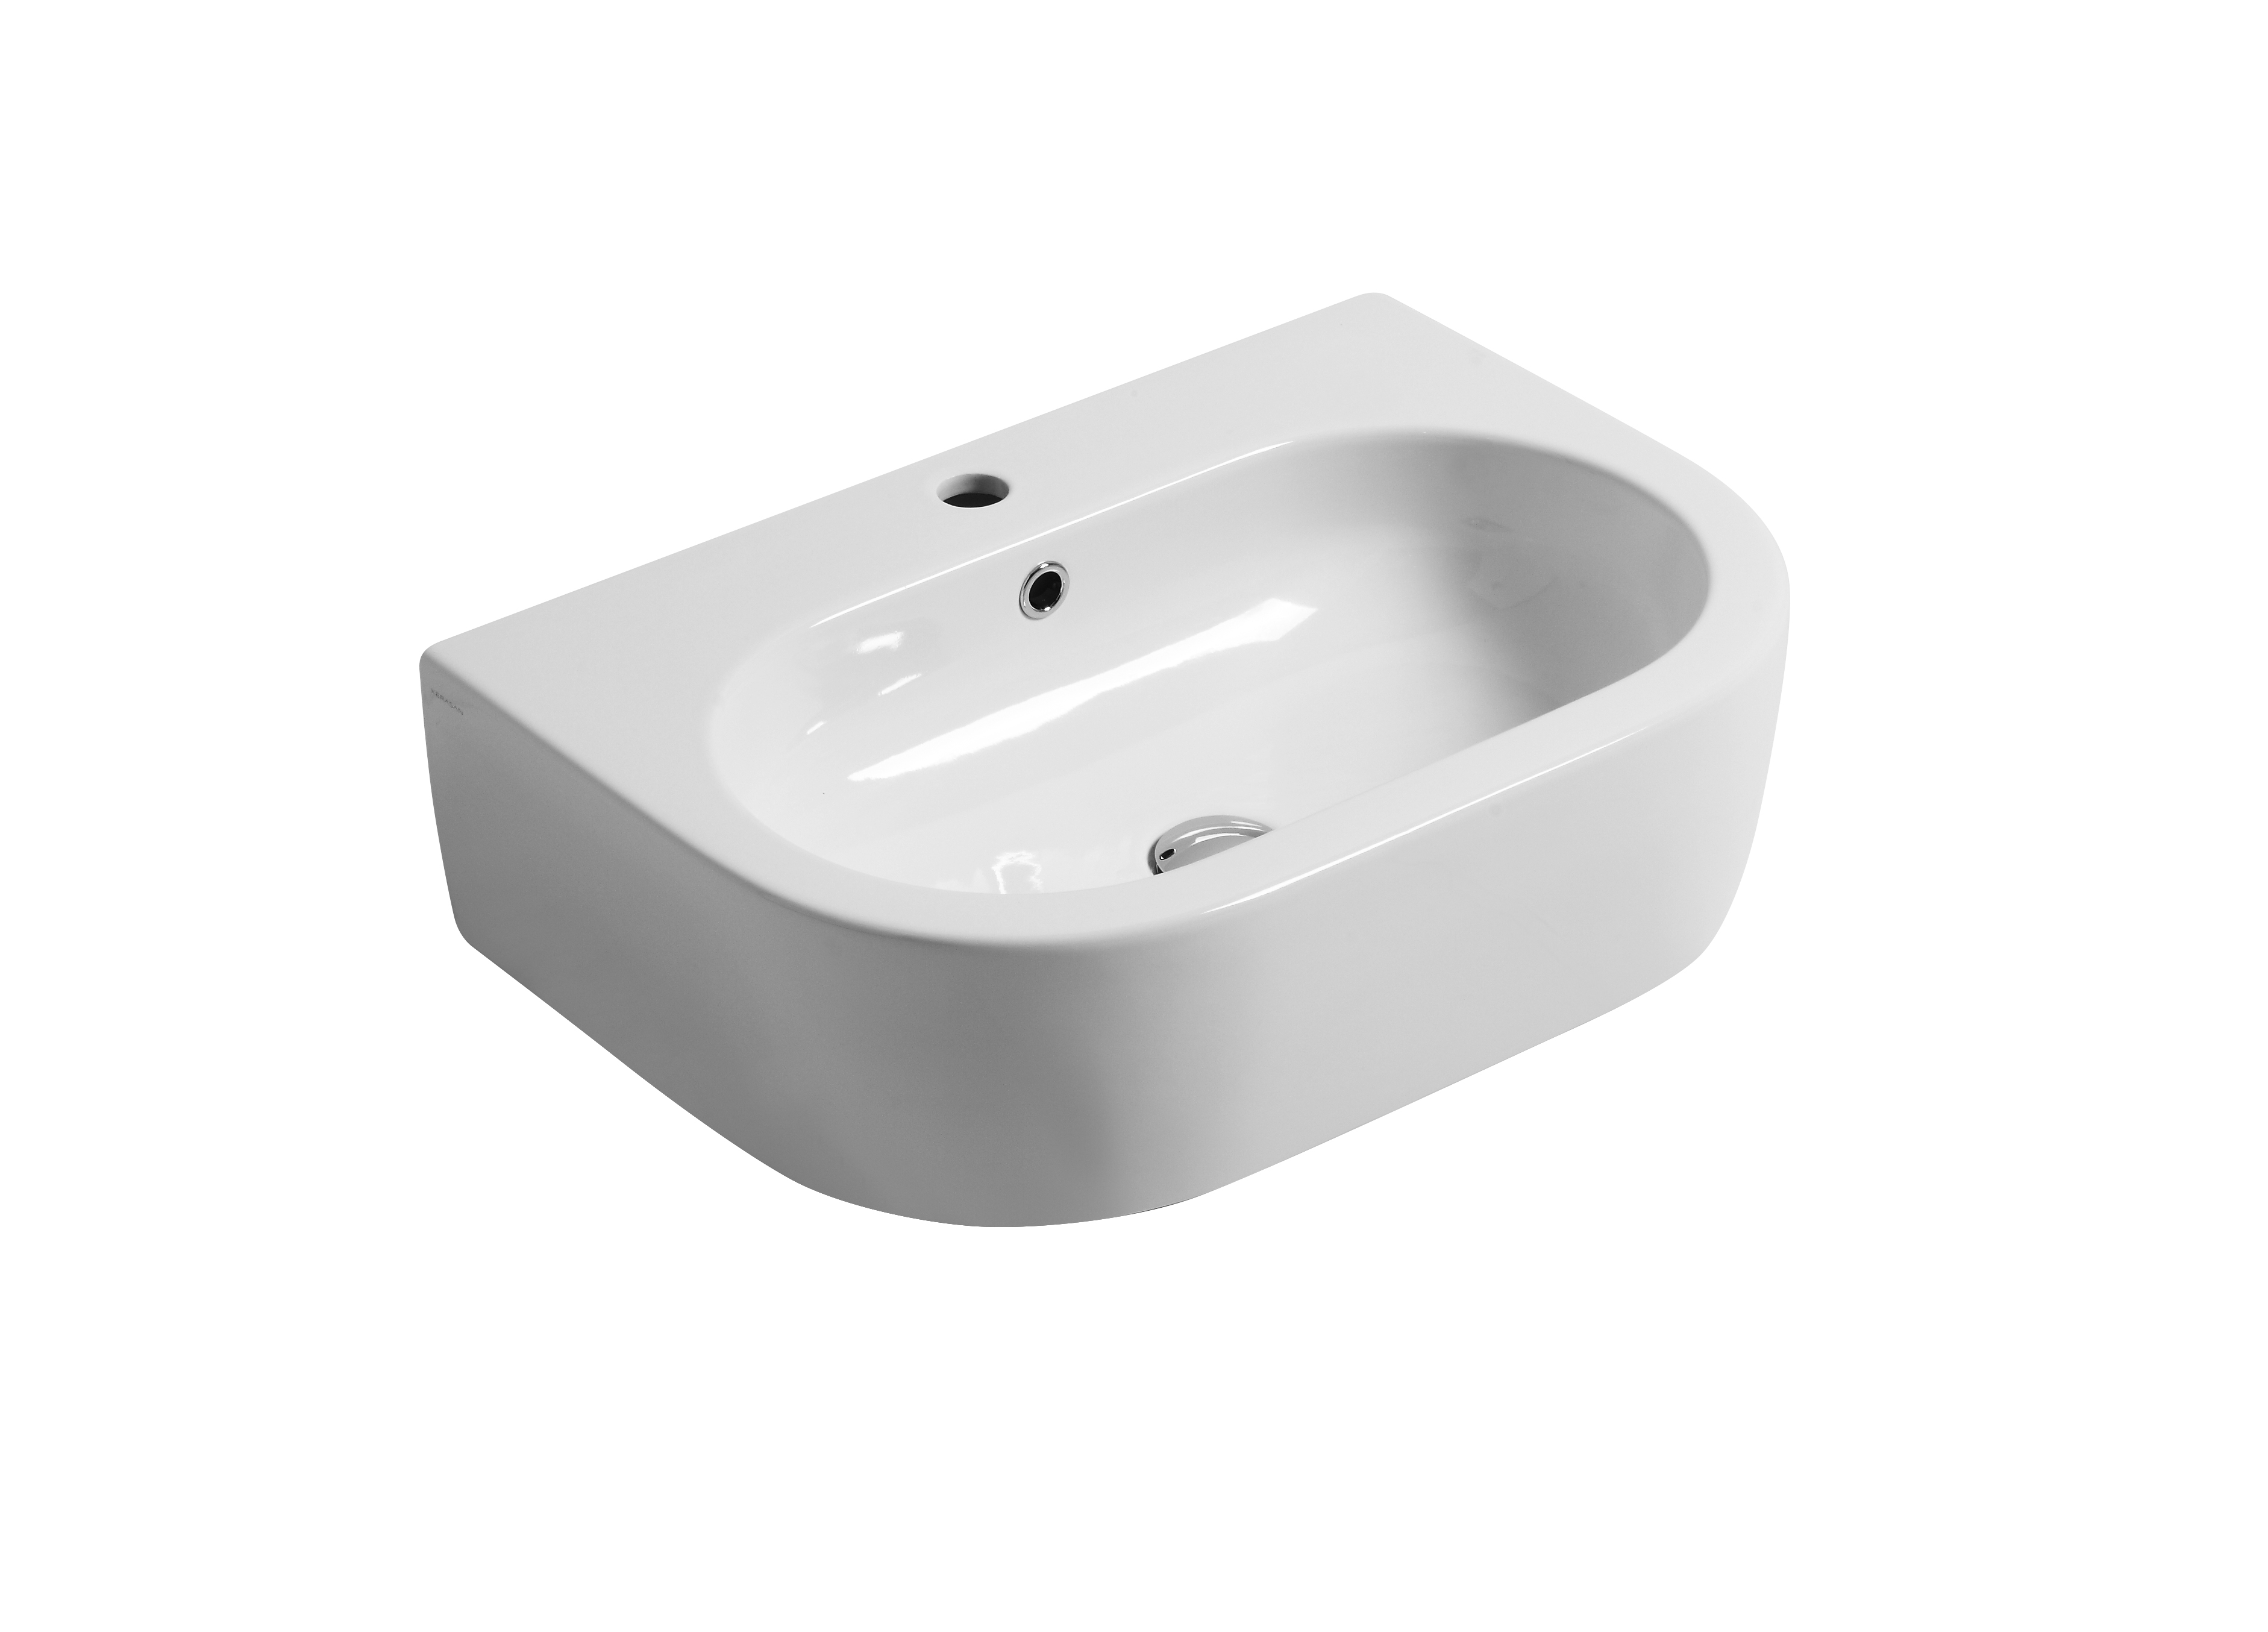 Flo 60cm Wall hung or Counter top basin